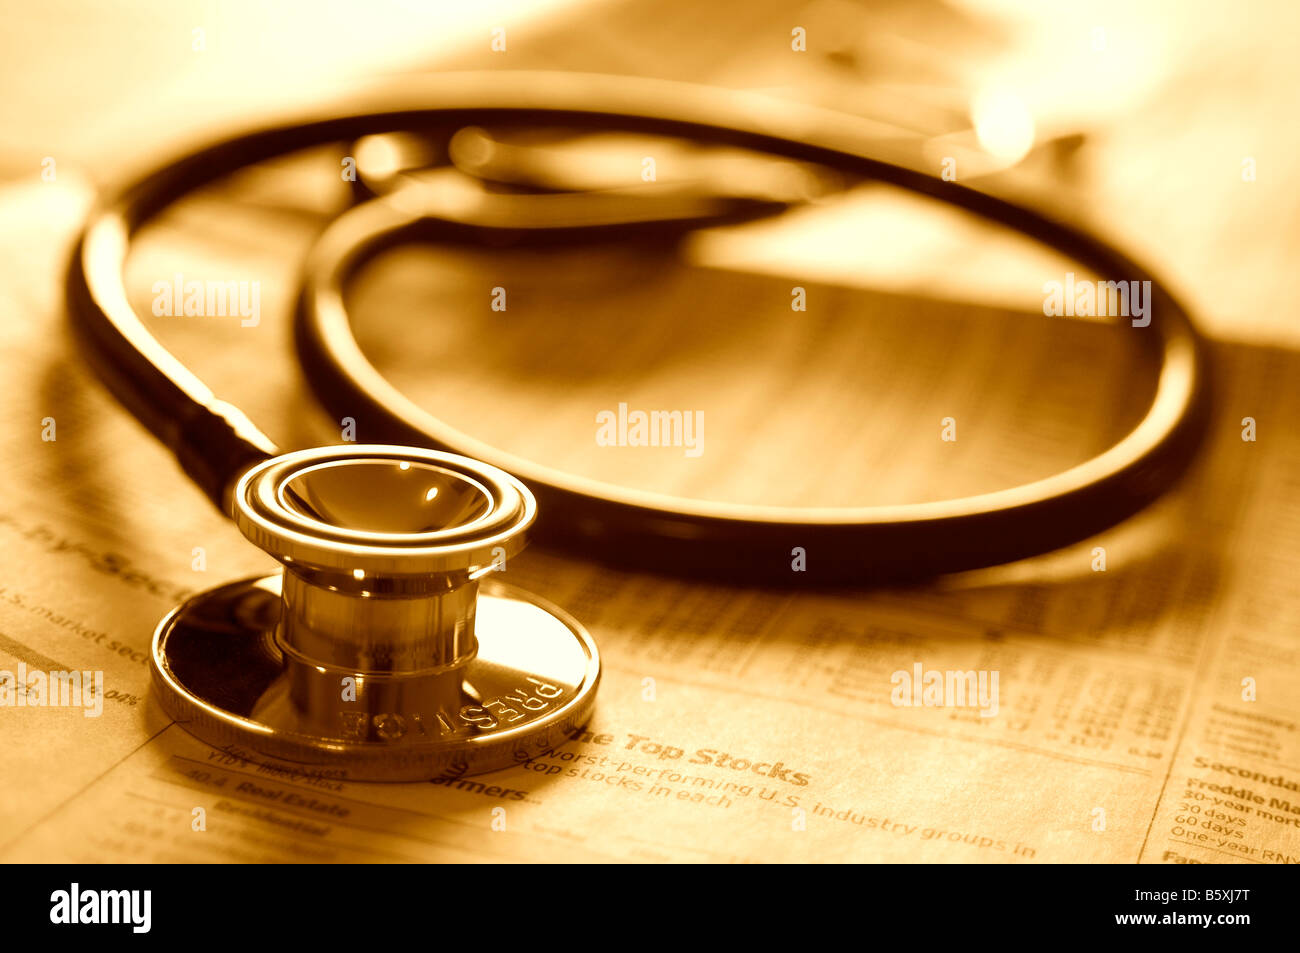 Doctor's stethoscope on investment business newspaper. - Stock Image